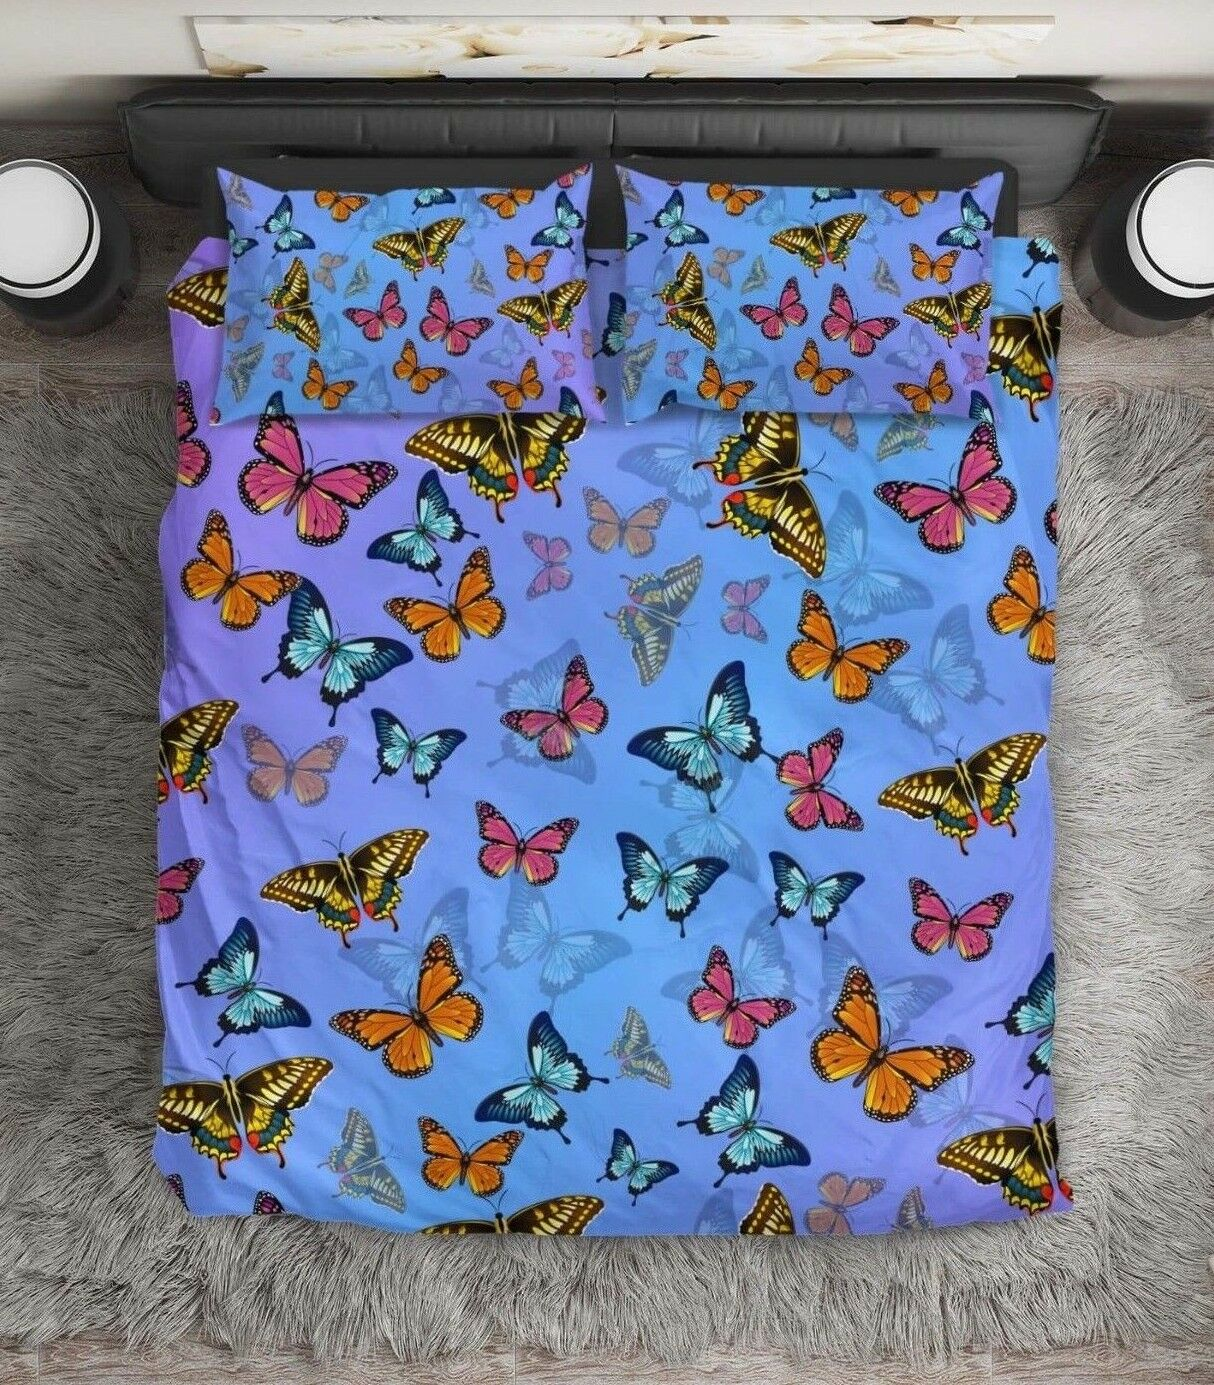 Butterfly Pattern Bedding Duvet Cover, Kids Gift, Kids, Queen, King, Twin,Double